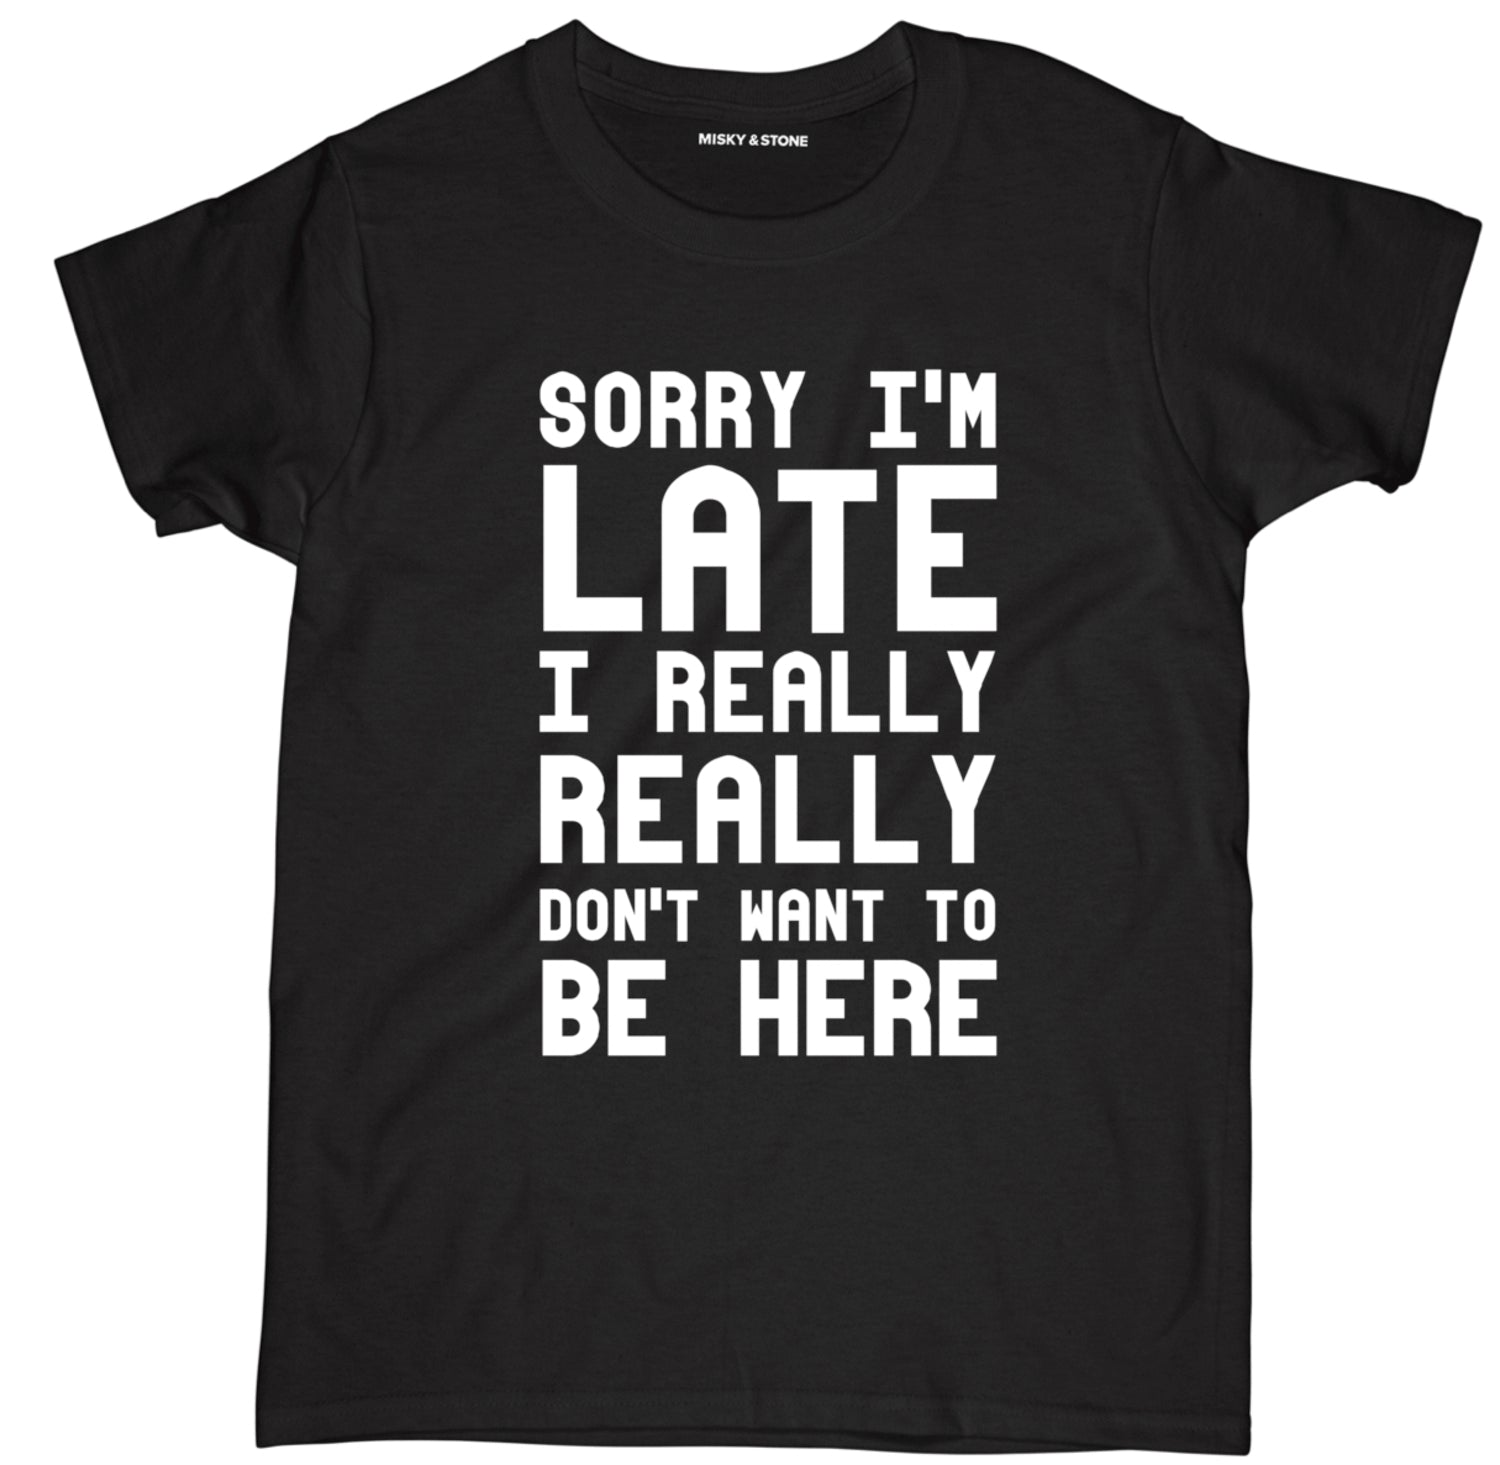 sorry im late i really dont want to be here t shirt, sorry im late shirt, sorry im late t shirt